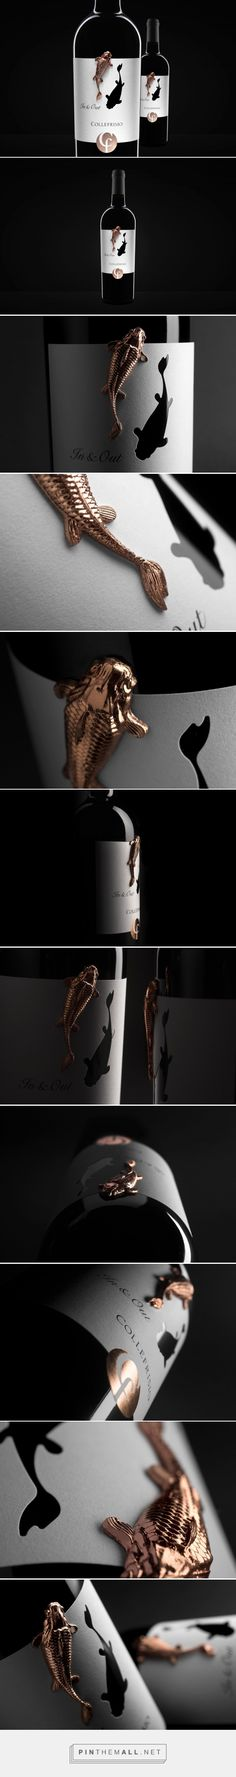 Packaging of the World is a package design inspiration archive showcasing the best, most interesting and creative work worldwide. Wine Packaging, Brand Packaging, Packaging Design, Wine Bottle Design, Wine Label Design, Different Types Of Wine, In Vino Veritas, Wine Bottle Crafts, Design Inspiration